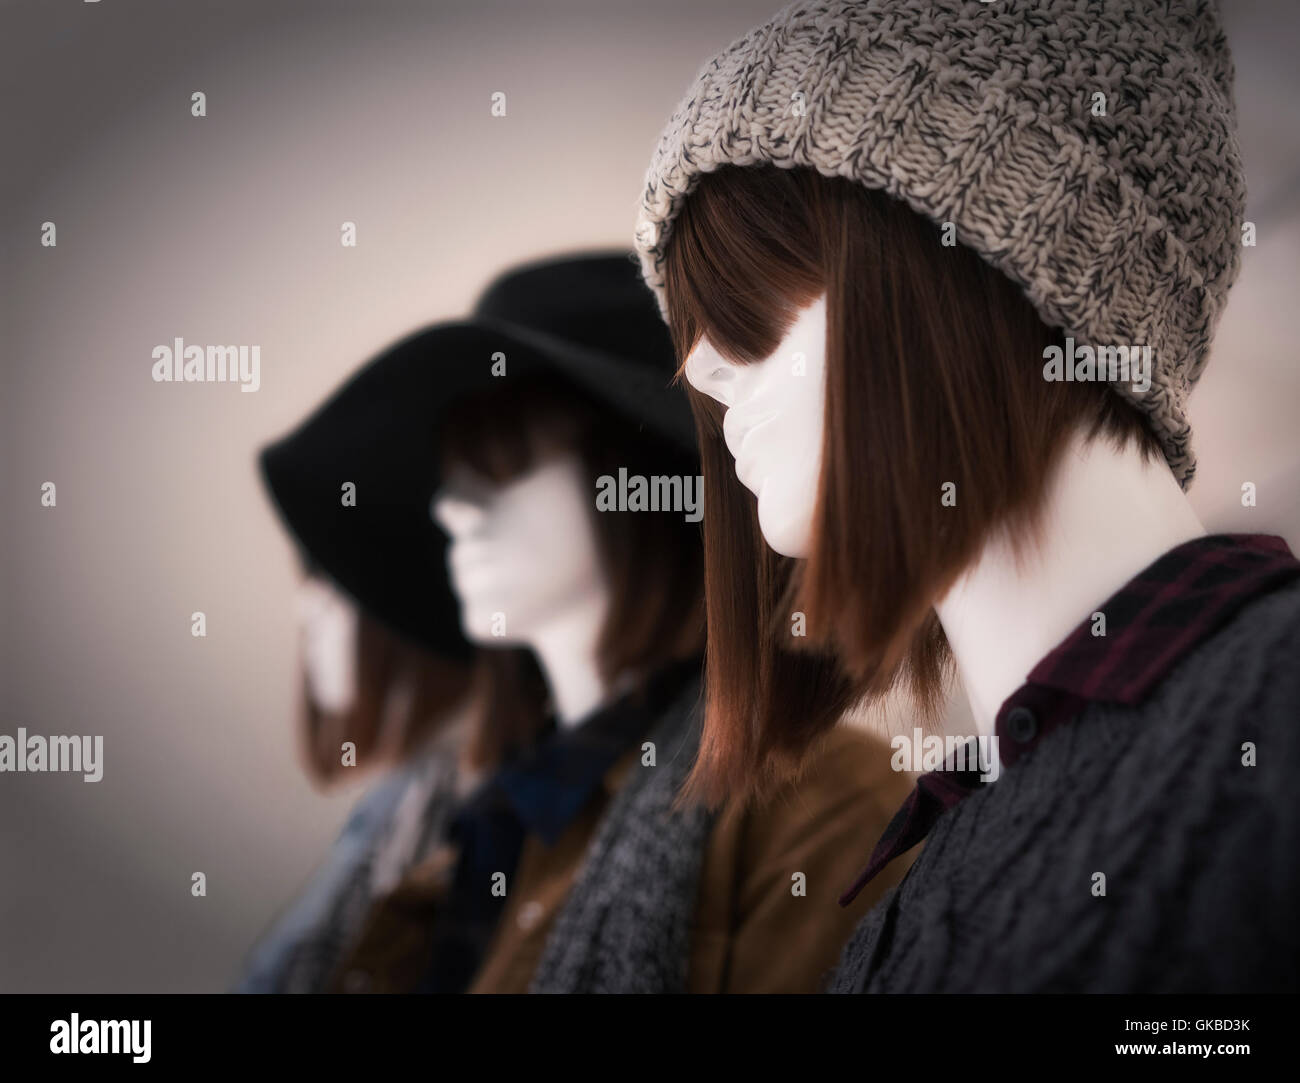 Mannequins sporting chic haircuts and fall/winter fashion - Stock Image